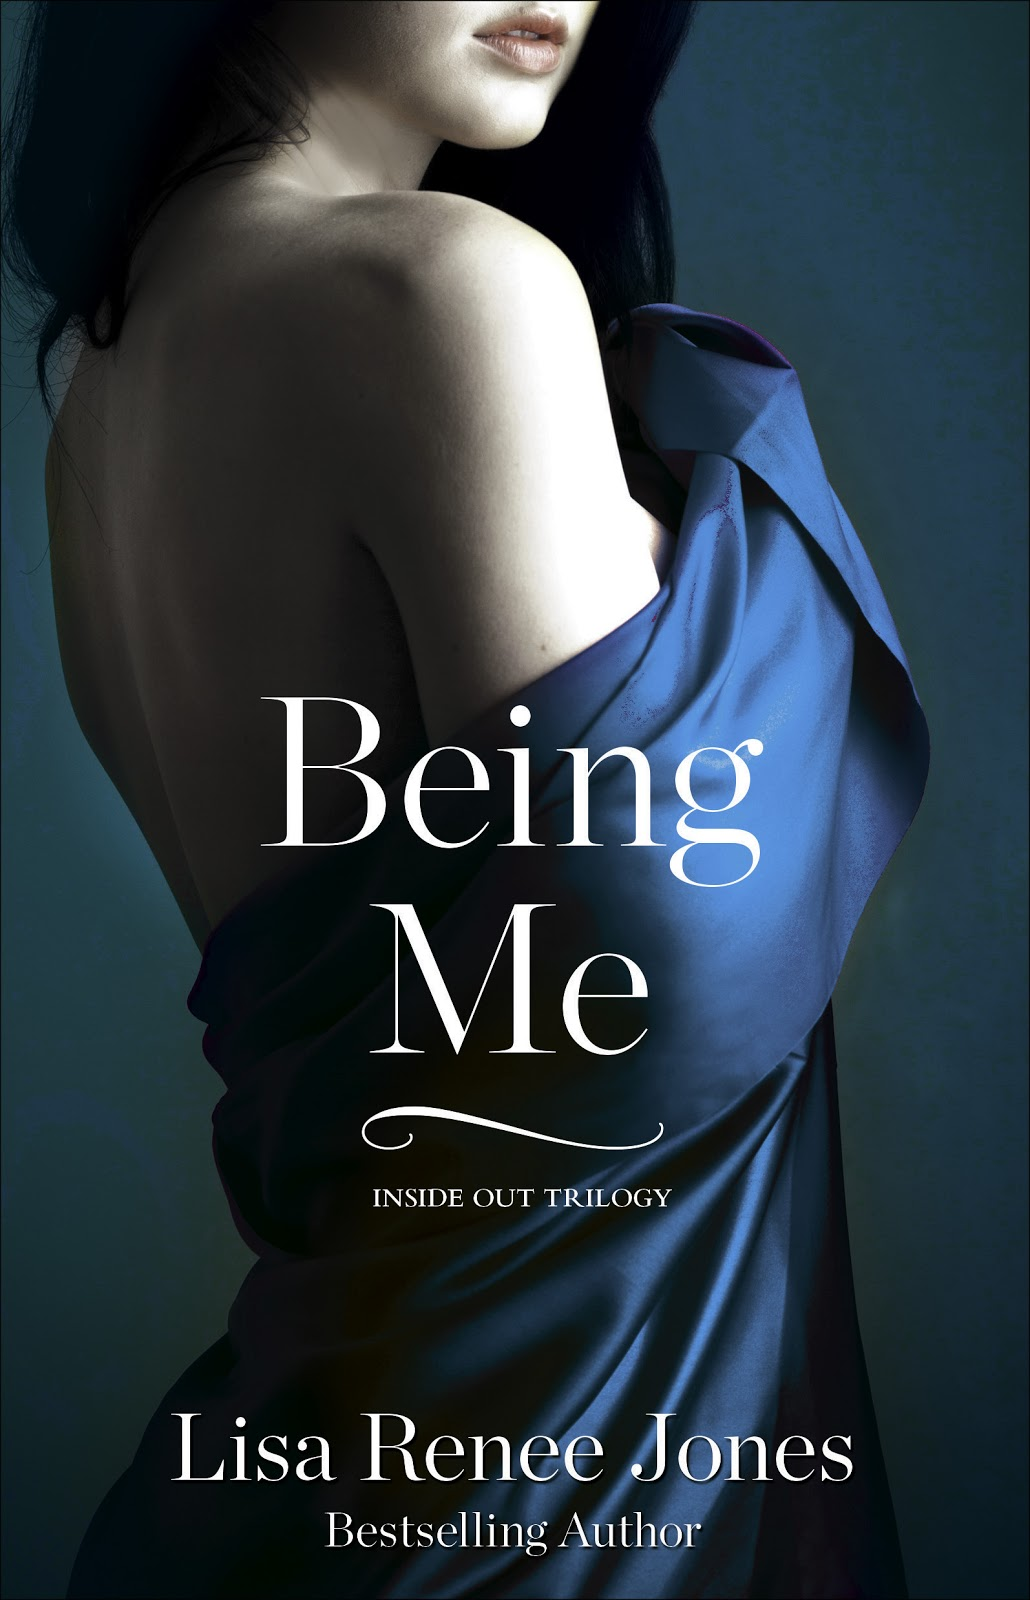 Review: Being Me by Lisa Renee Jones